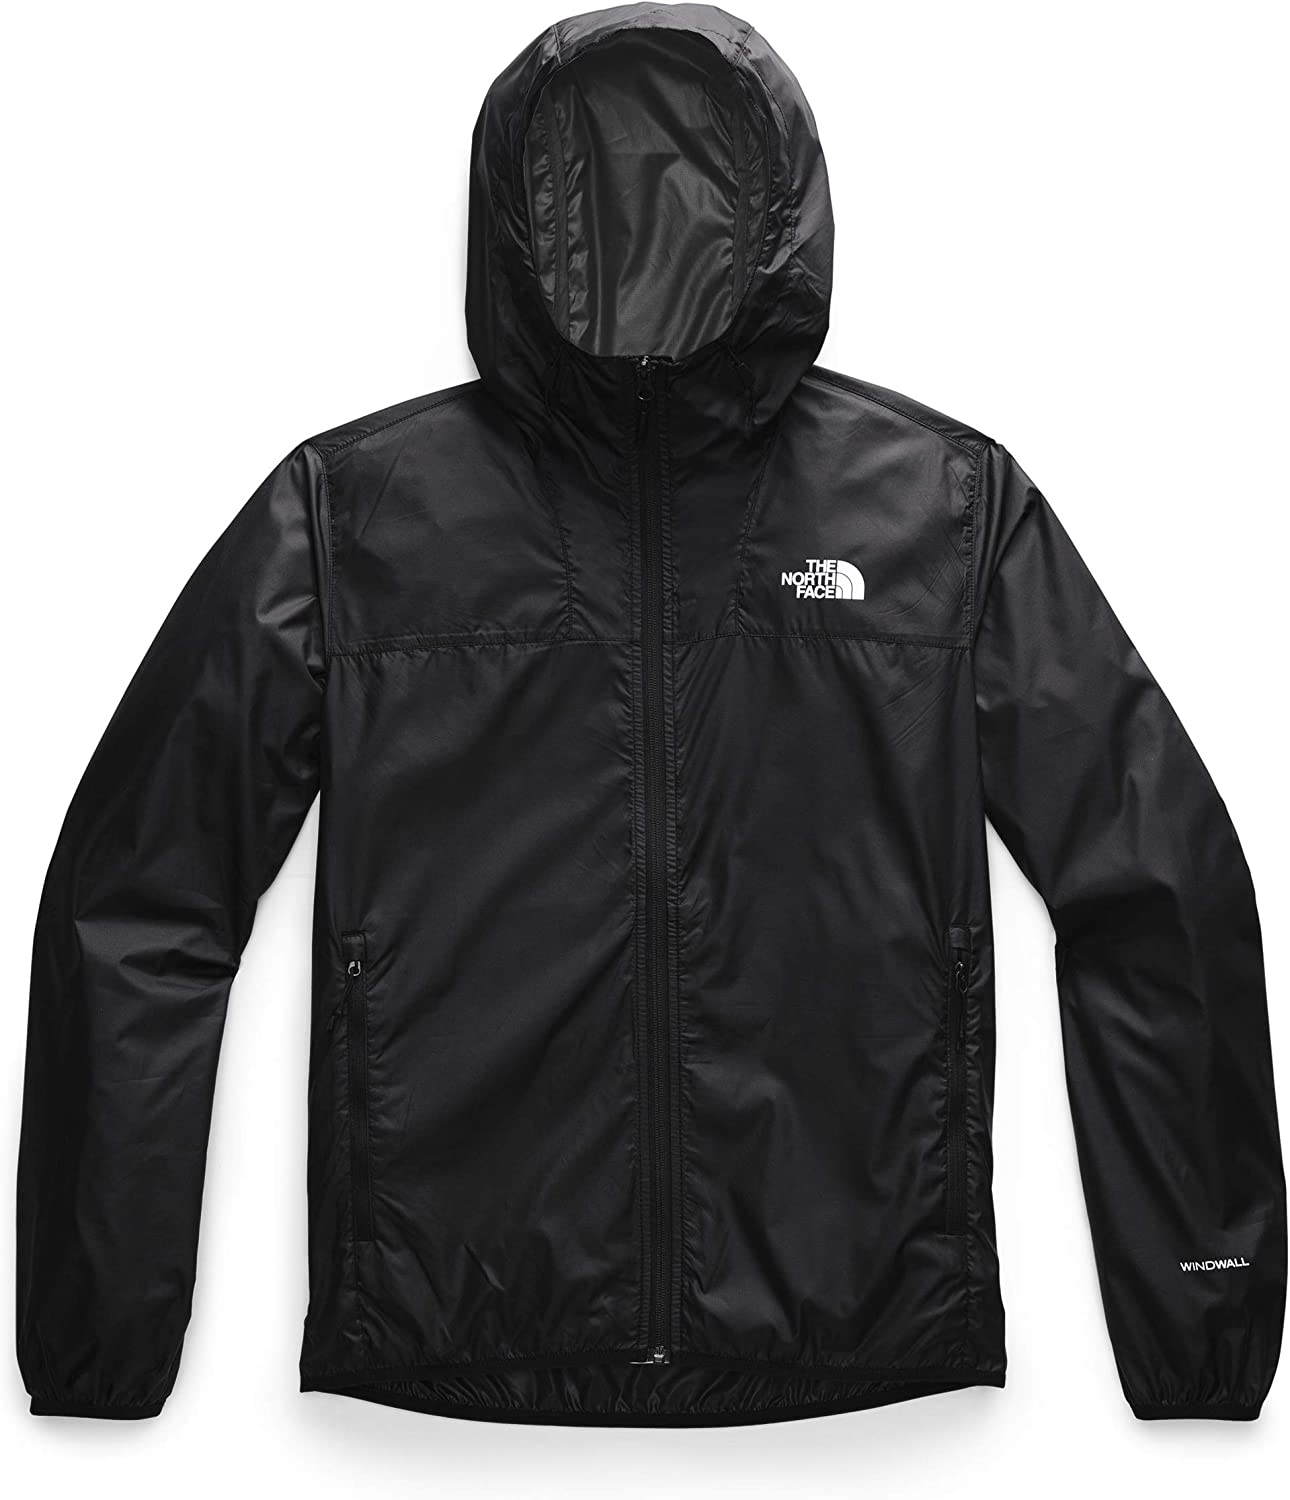 The North Face Men's Cyclone 2 Windbreaker Hooded Jacket